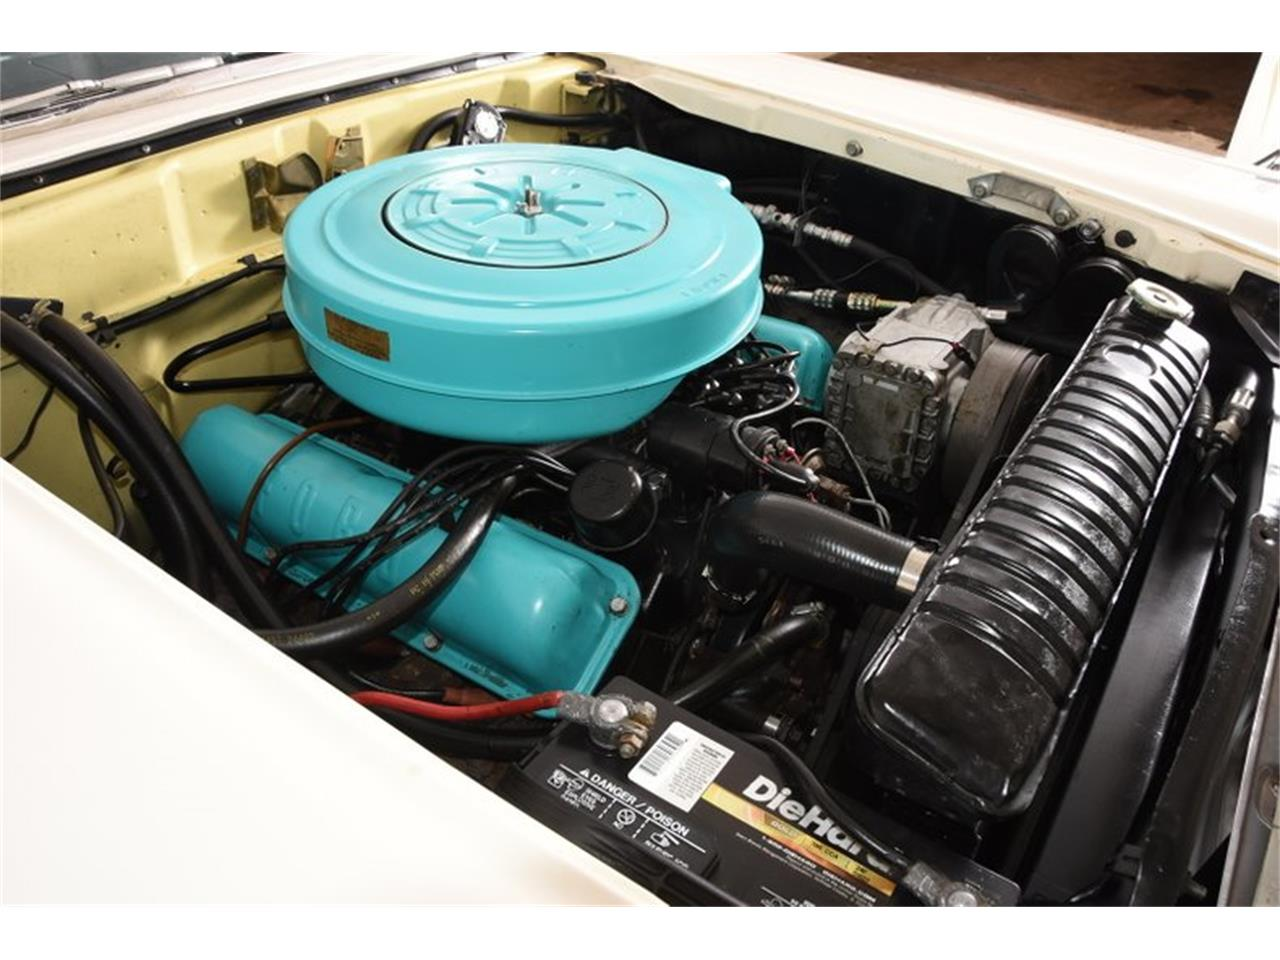 Large Picture of '59 Ford Fairlane - $42,998.00 - OTK2